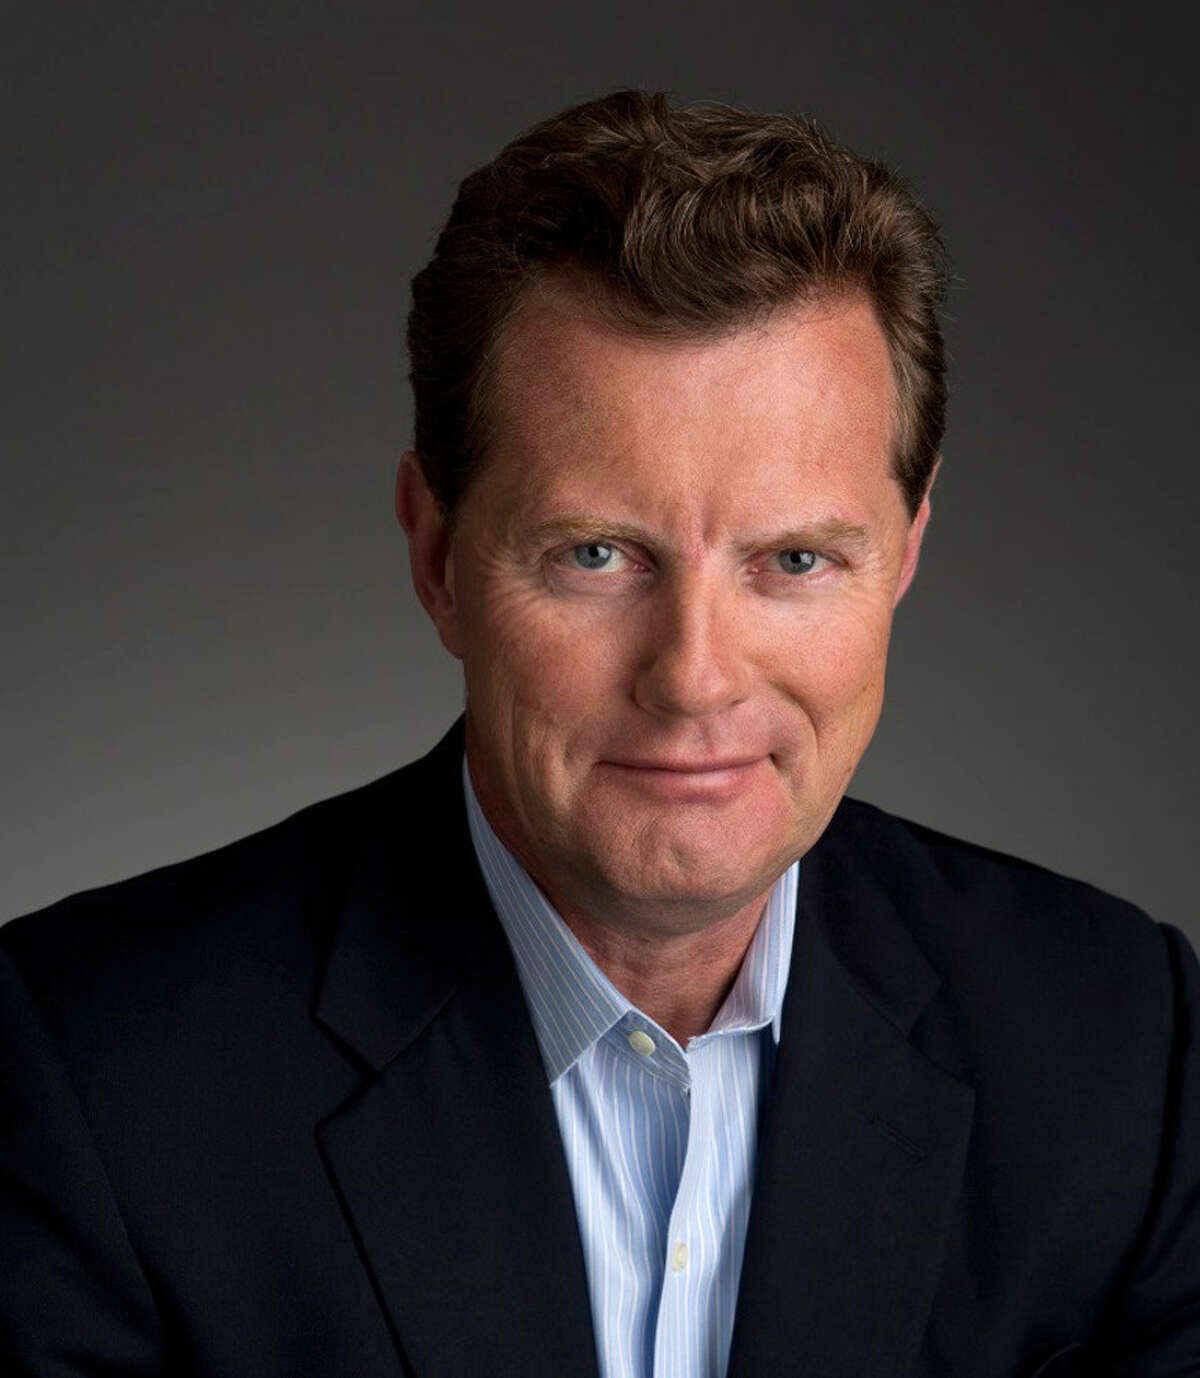 Snowflake Appointed Frank Slootman As Chairman And CEO in 2019.